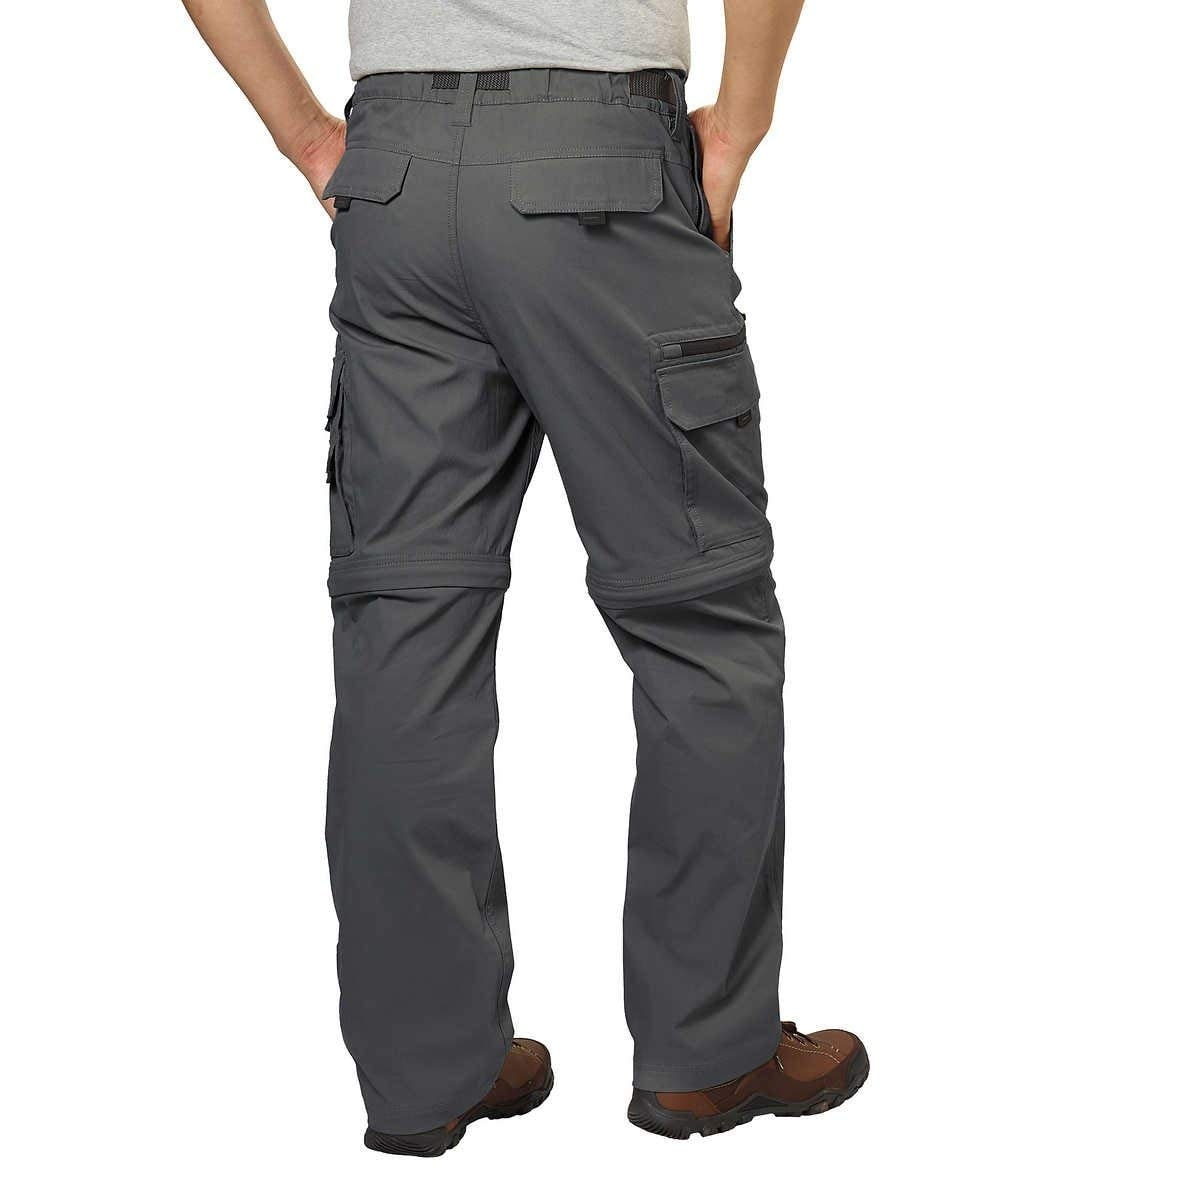 BC Clothing Mens Convertible Lightweight Comfort Stretch Cargo Pants or Shorts